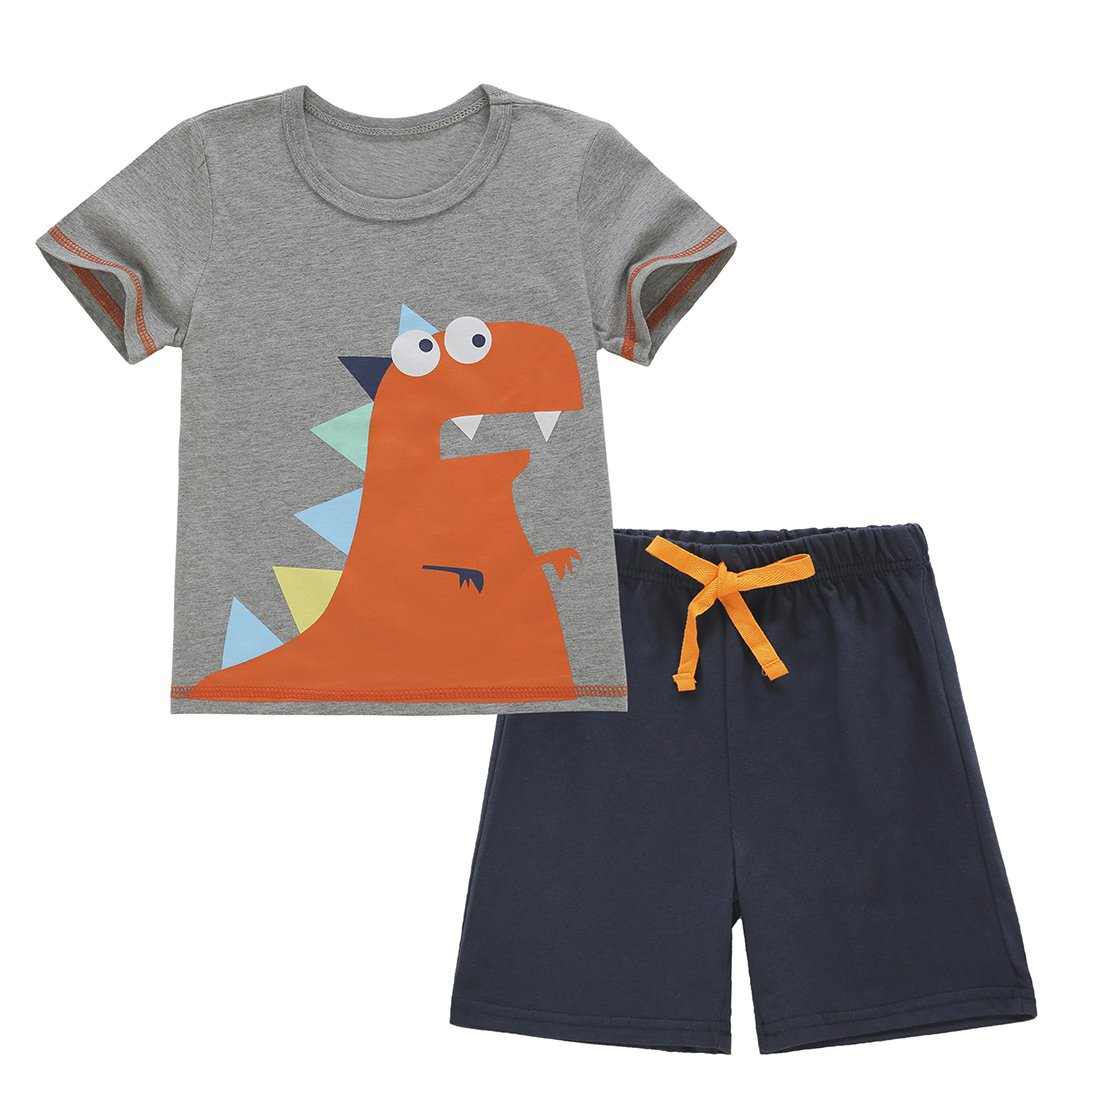 ChicNChic Baby Boys Toddler Summer Clothes Dinosaur T-Shirt with Short Pants Outfits Set (24M(18-24M), Grey)